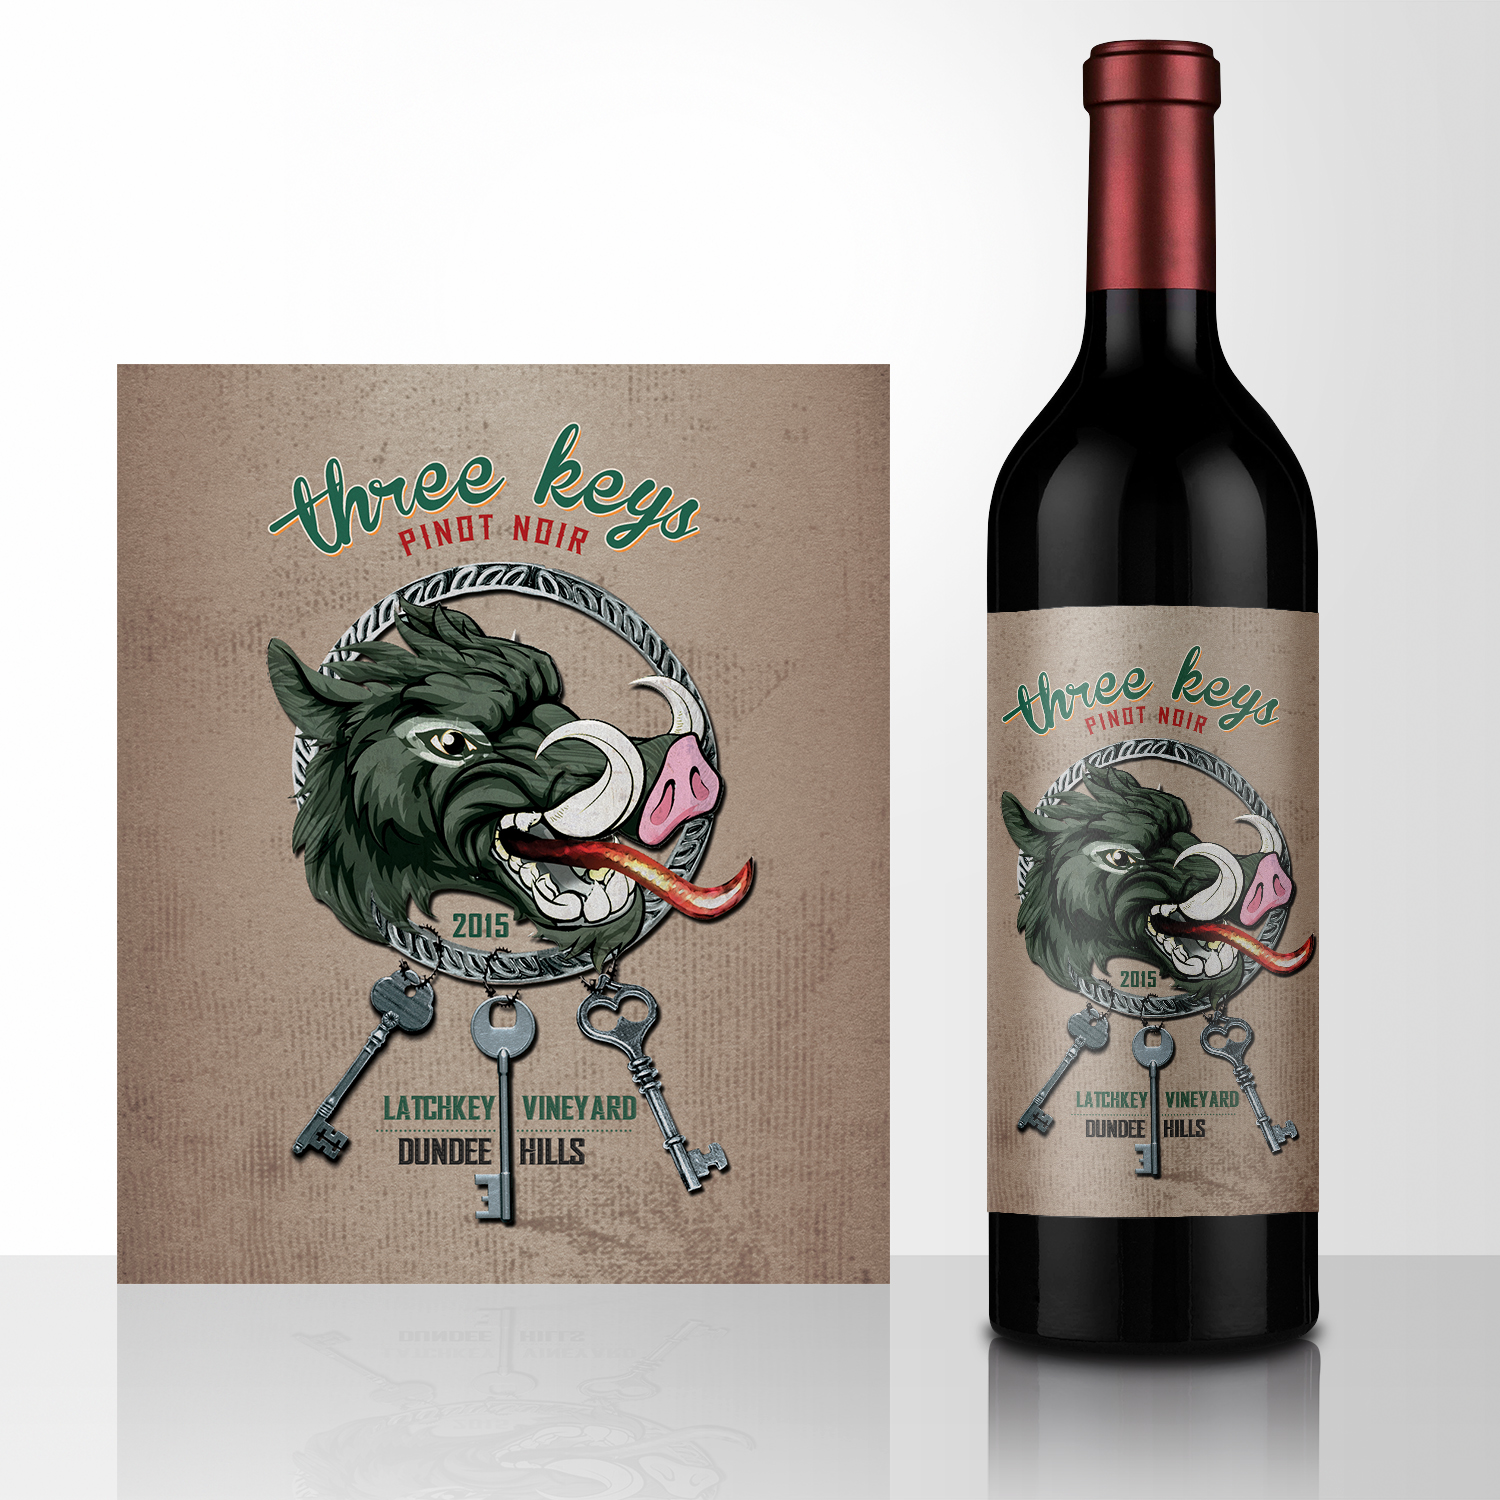 Label Design by SD WEBCREATION for this project | Design #17268035